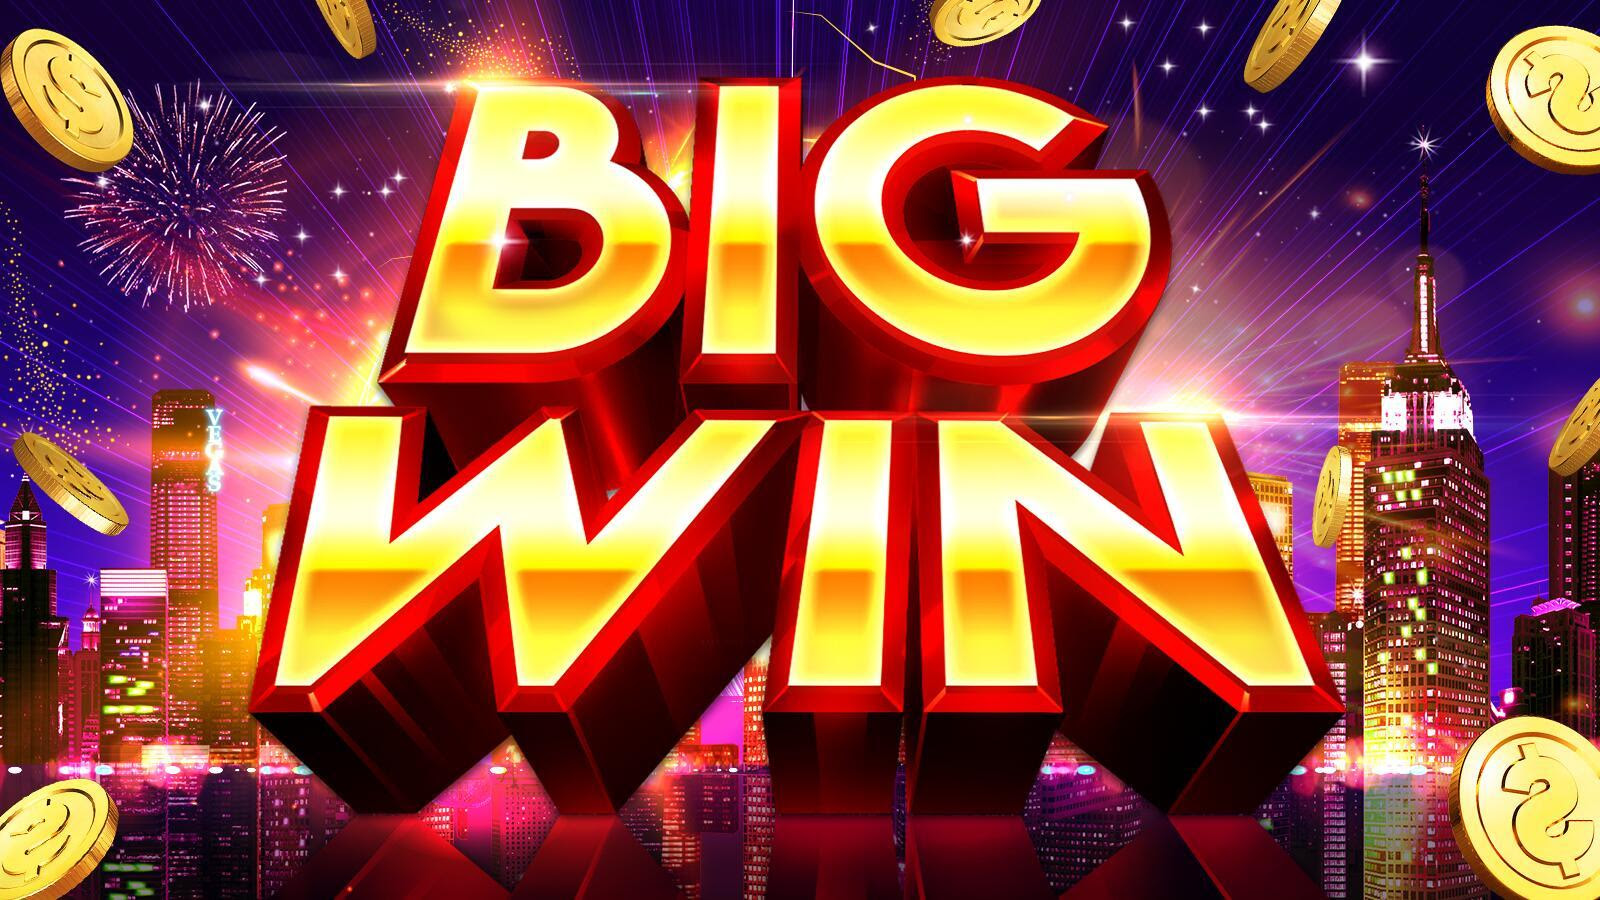 Casino slot machine big wins